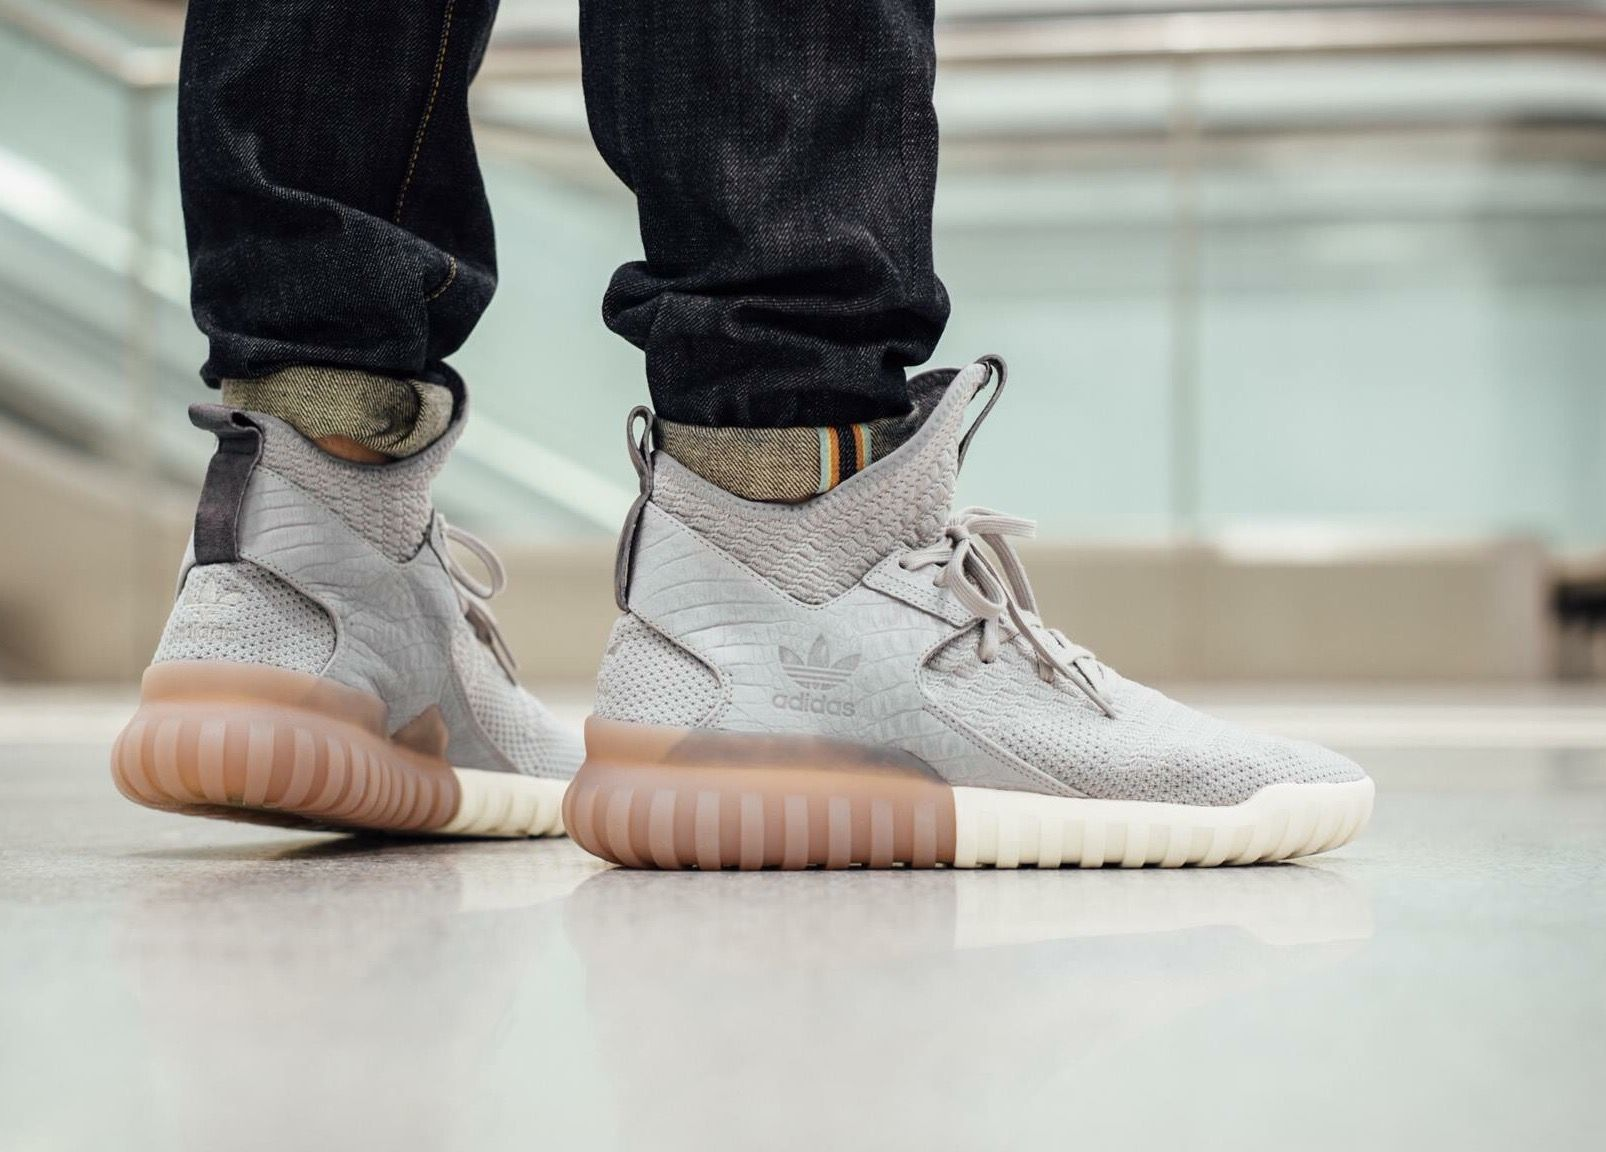 Adidas Tubular X Primeknit The Awesomer